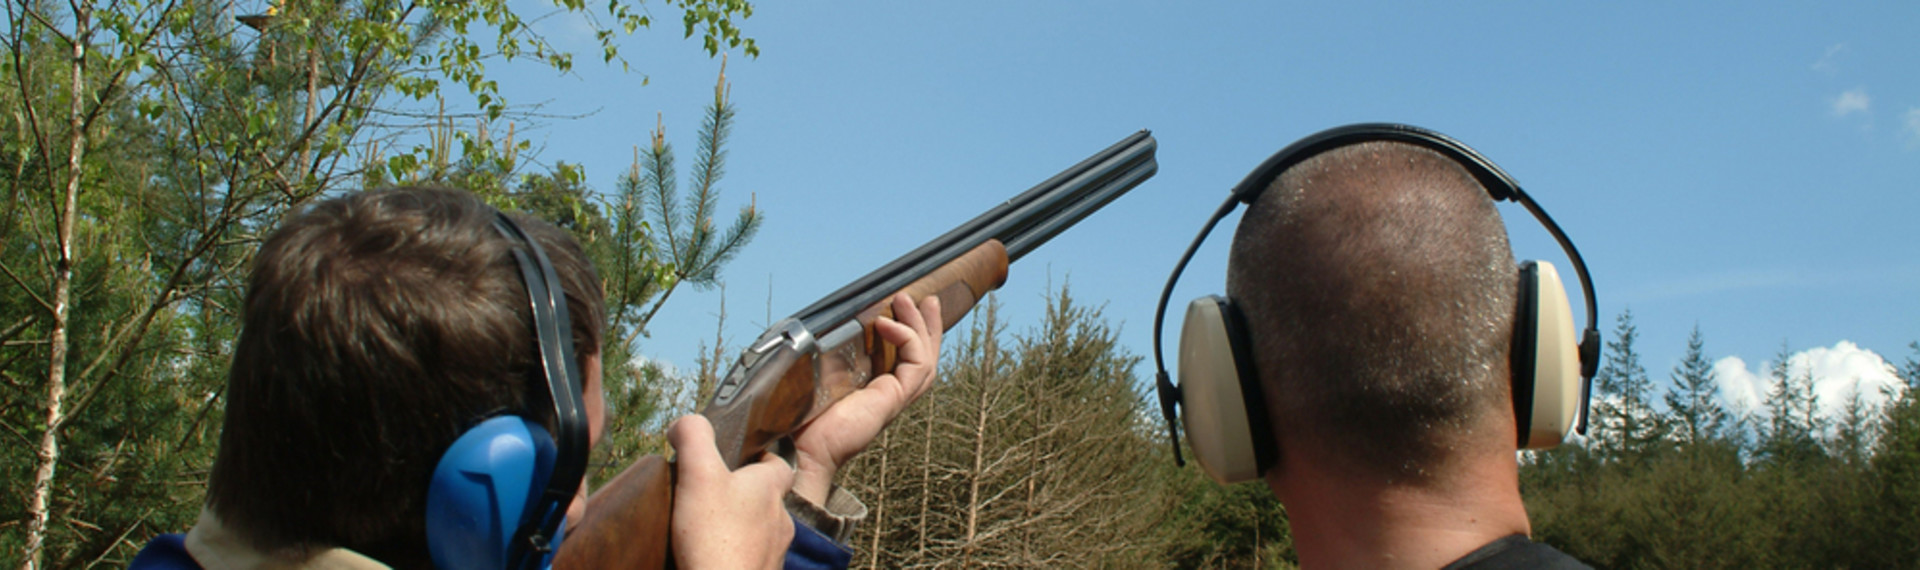 Warsaw Clay Pigeon Shooting image